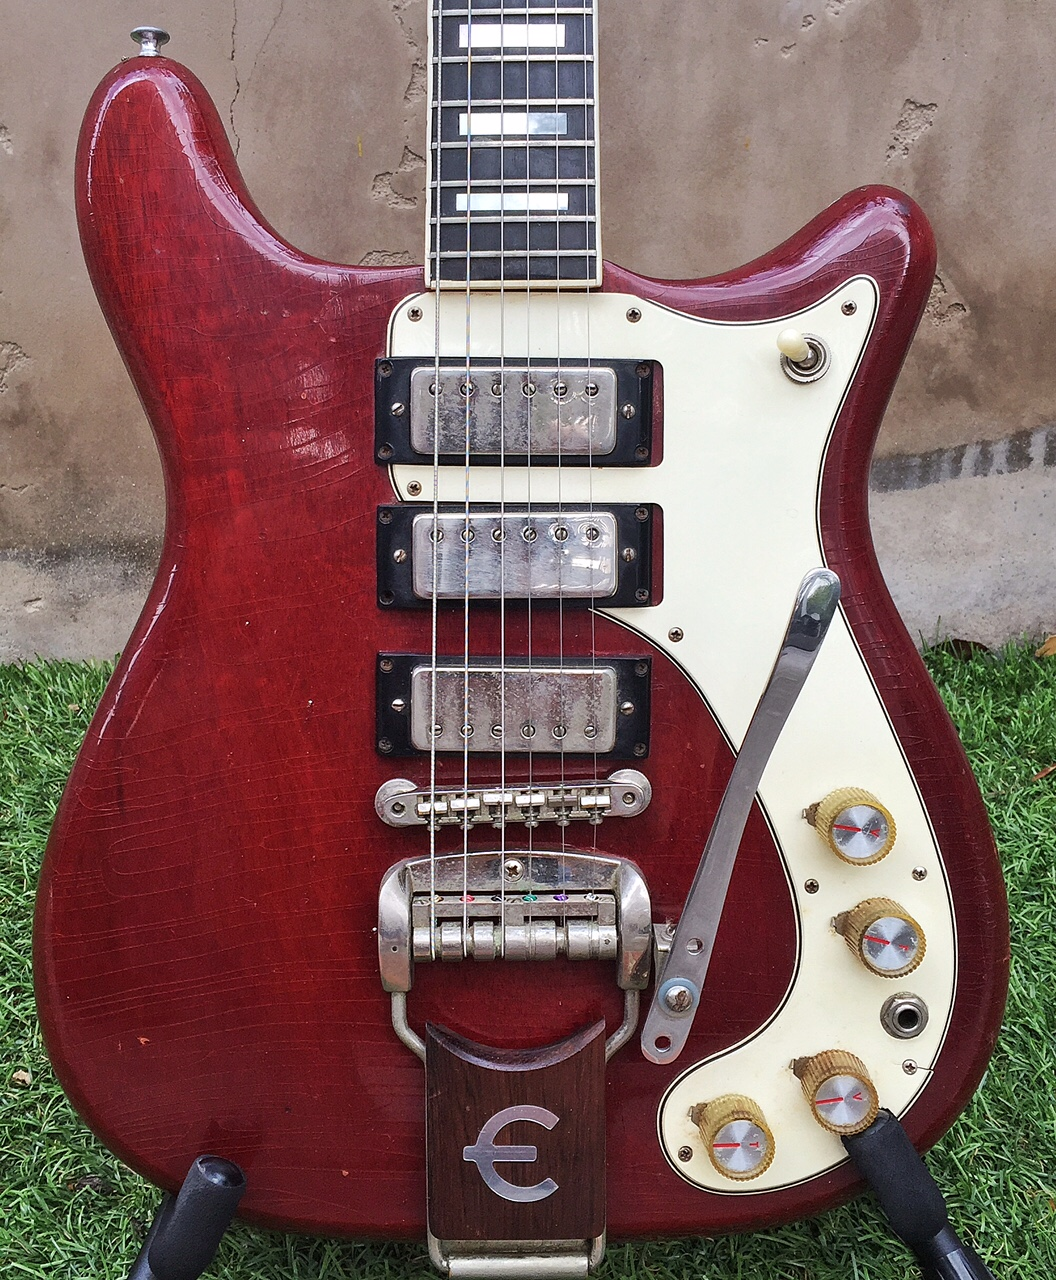 epiphone crestwood deluxe 1965 cherry red. Black Bedroom Furniture Sets. Home Design Ideas